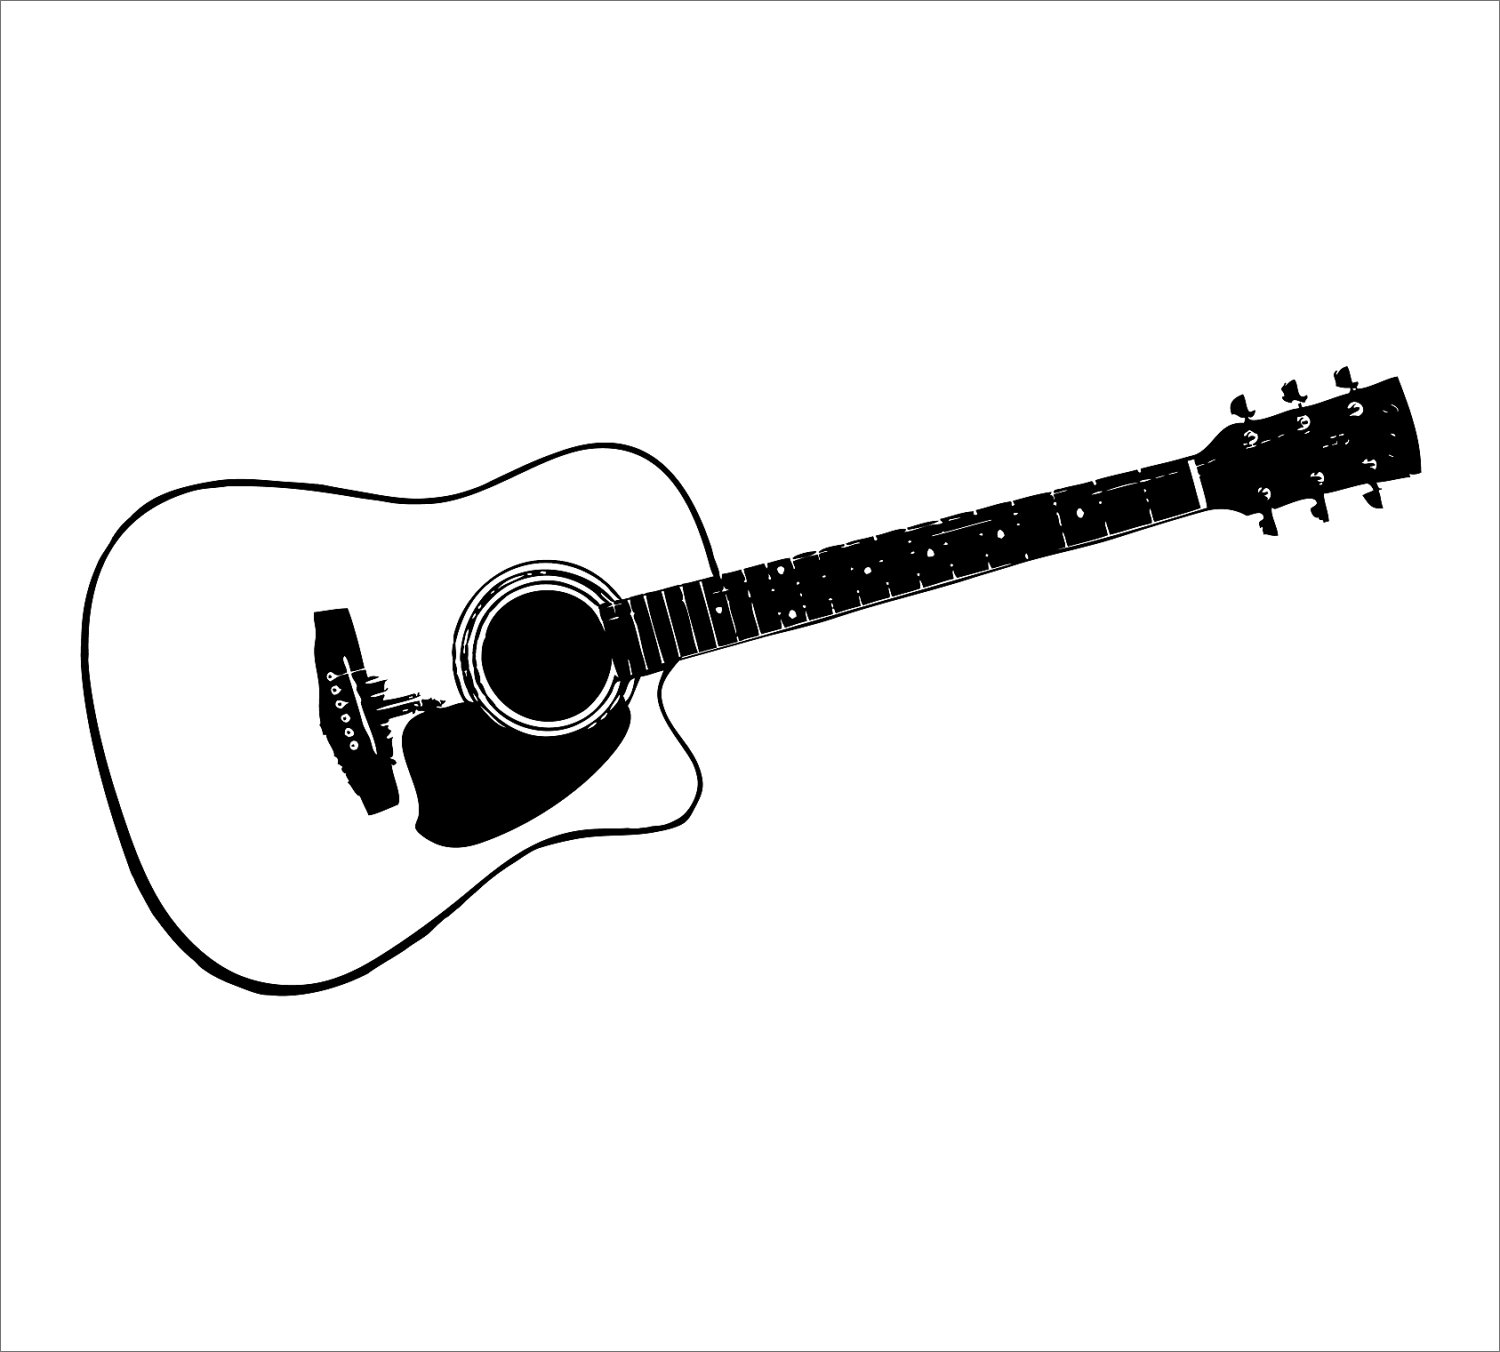 Acoustic guitar clipart black and white jpg black and white Free Acoustic Guitar Clipart, Download Free Clip Art, Free Clip Art ... jpg black and white